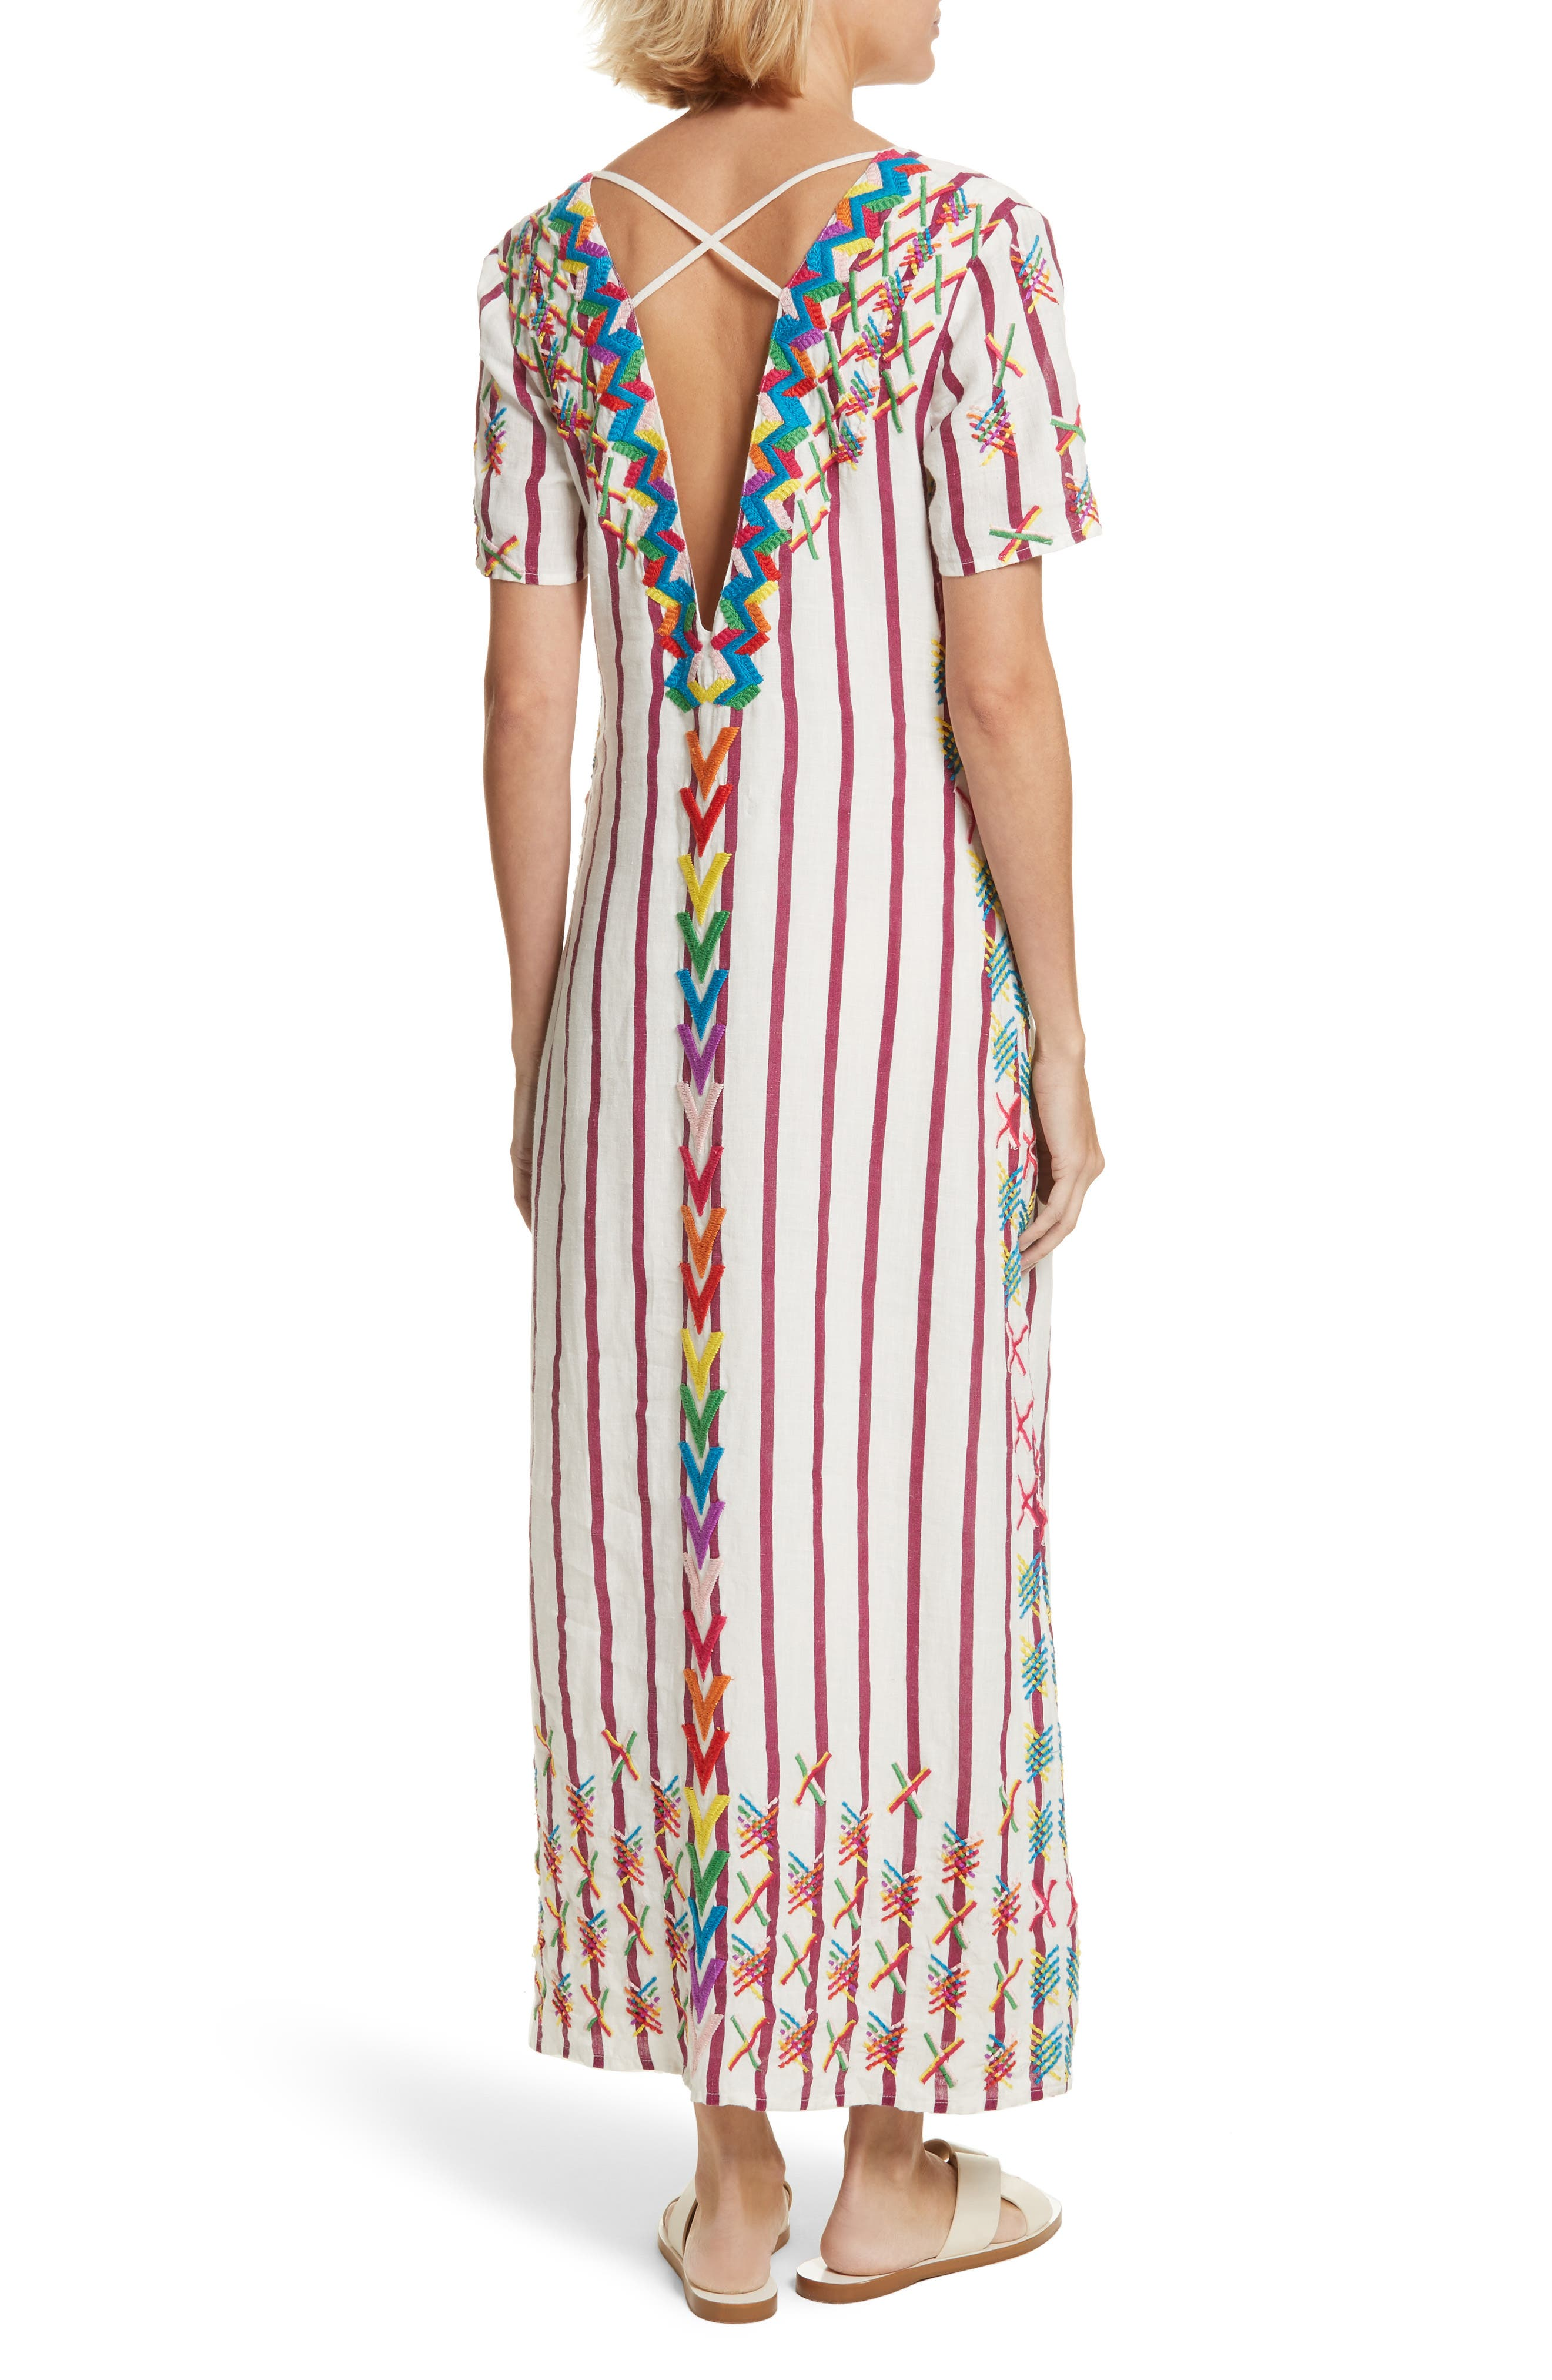 Maria Embroidered Maxi Dress,                             Alternate thumbnail 2, color,                             930